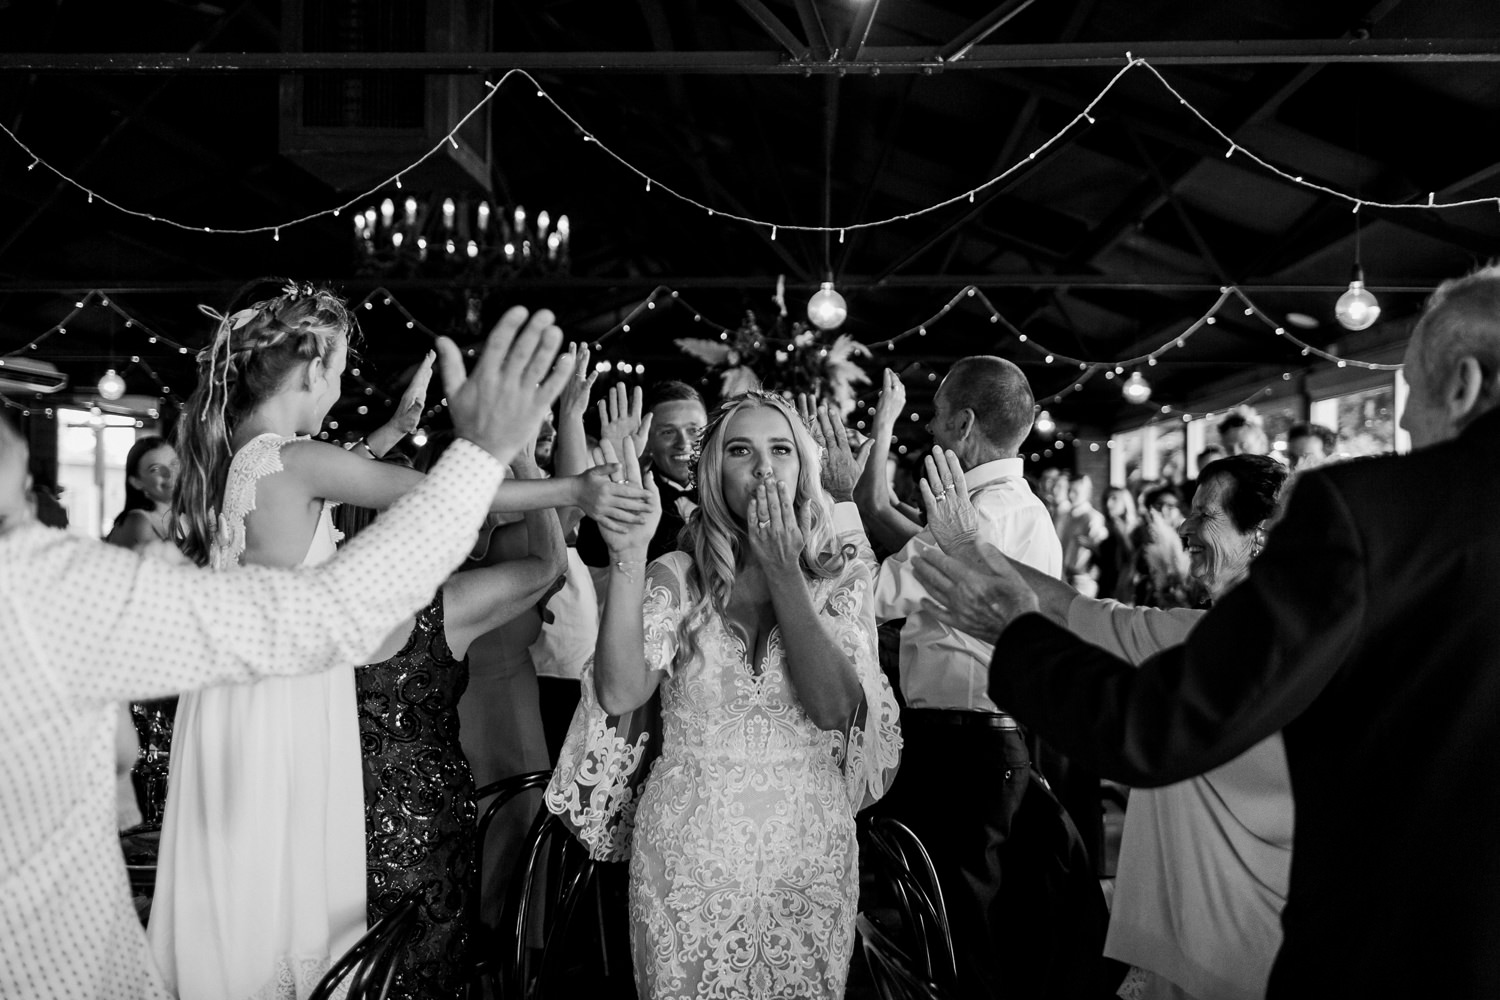 zonzo-estate-yarra-valley-wedding-photographer_0080.jpg